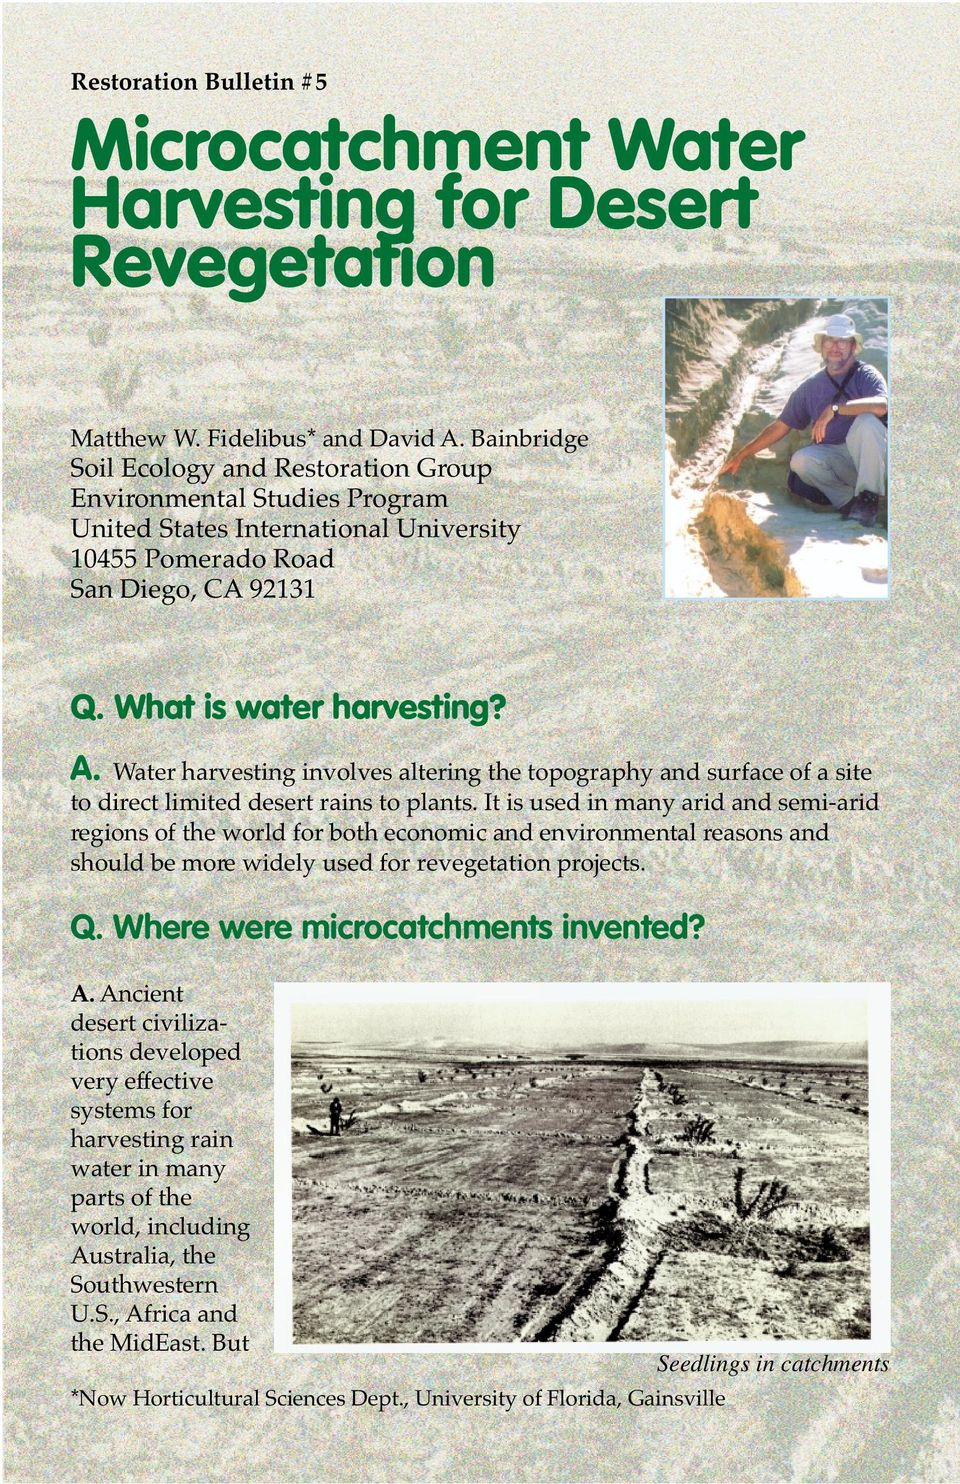 Water harvesting involves altering the topography and surface of a site to direct limited desert rains to plants.